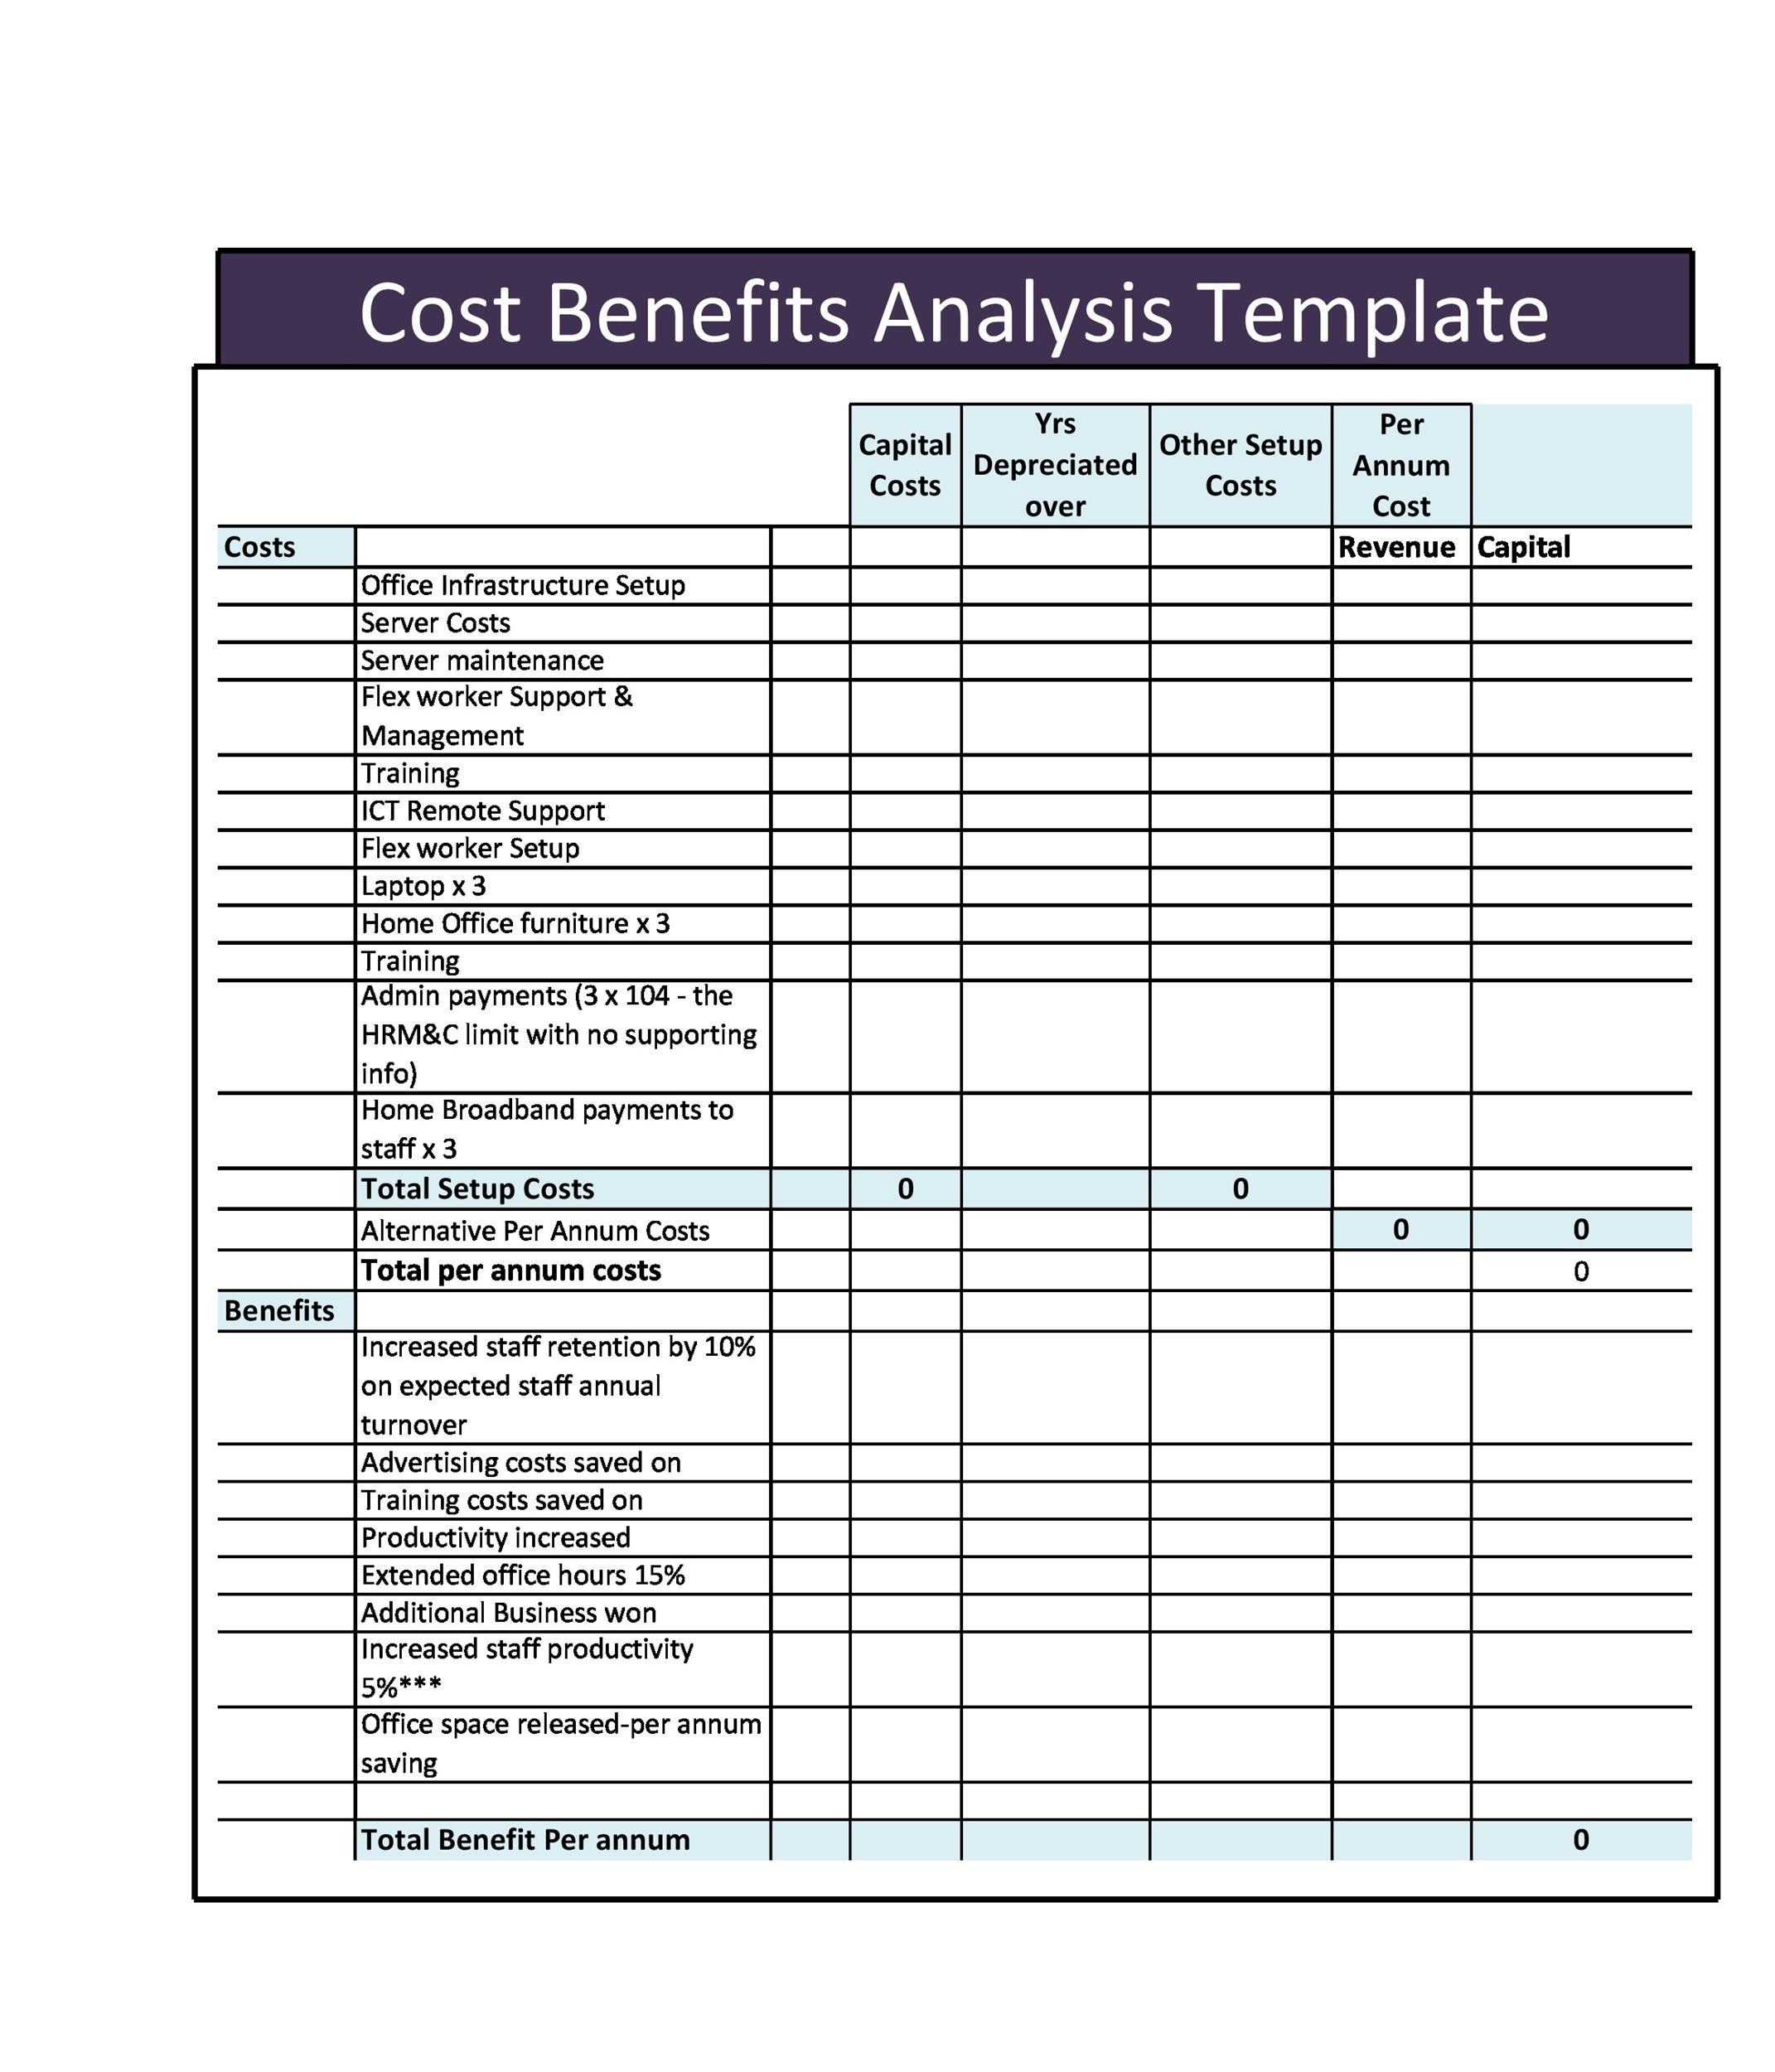 cost analysis report template 28 images cost analysis report – Turnover Report Template